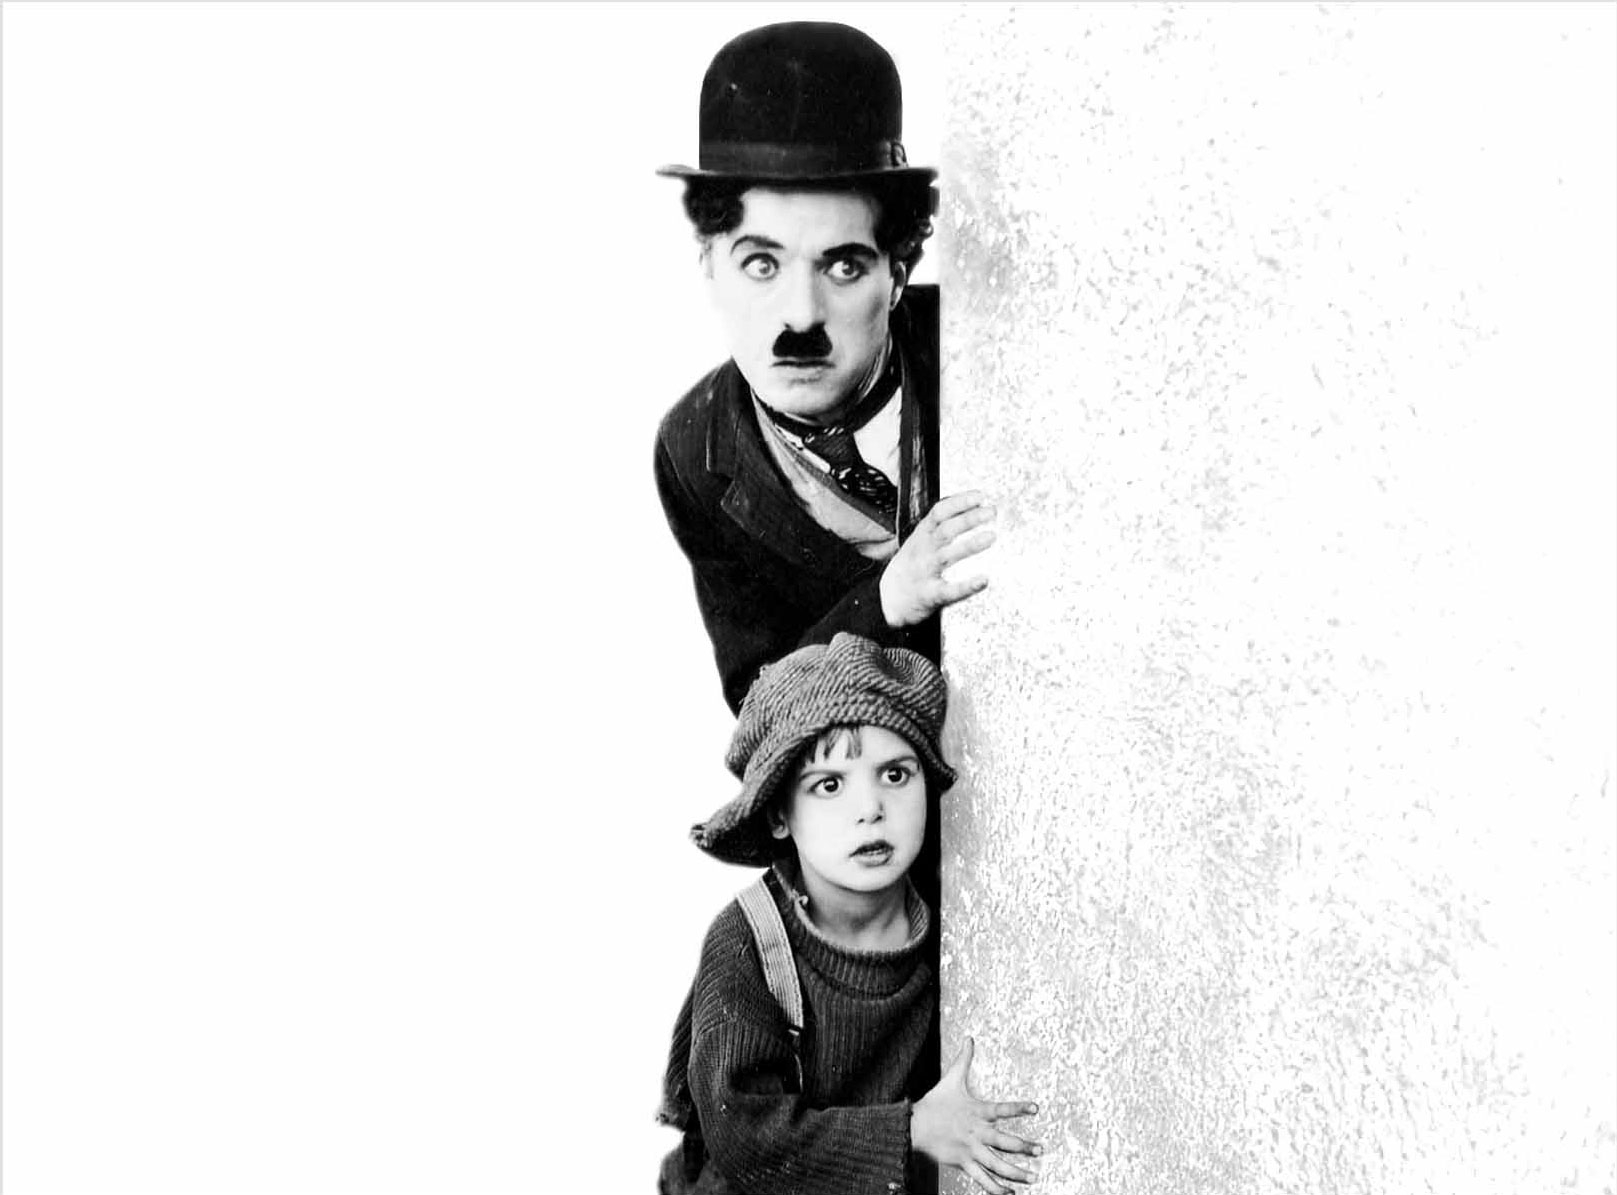 Charlie chaplin wallpaper and background image 1617x1195 id347959 celebrity charlie chaplin wallpaper thecheapjerseys Images